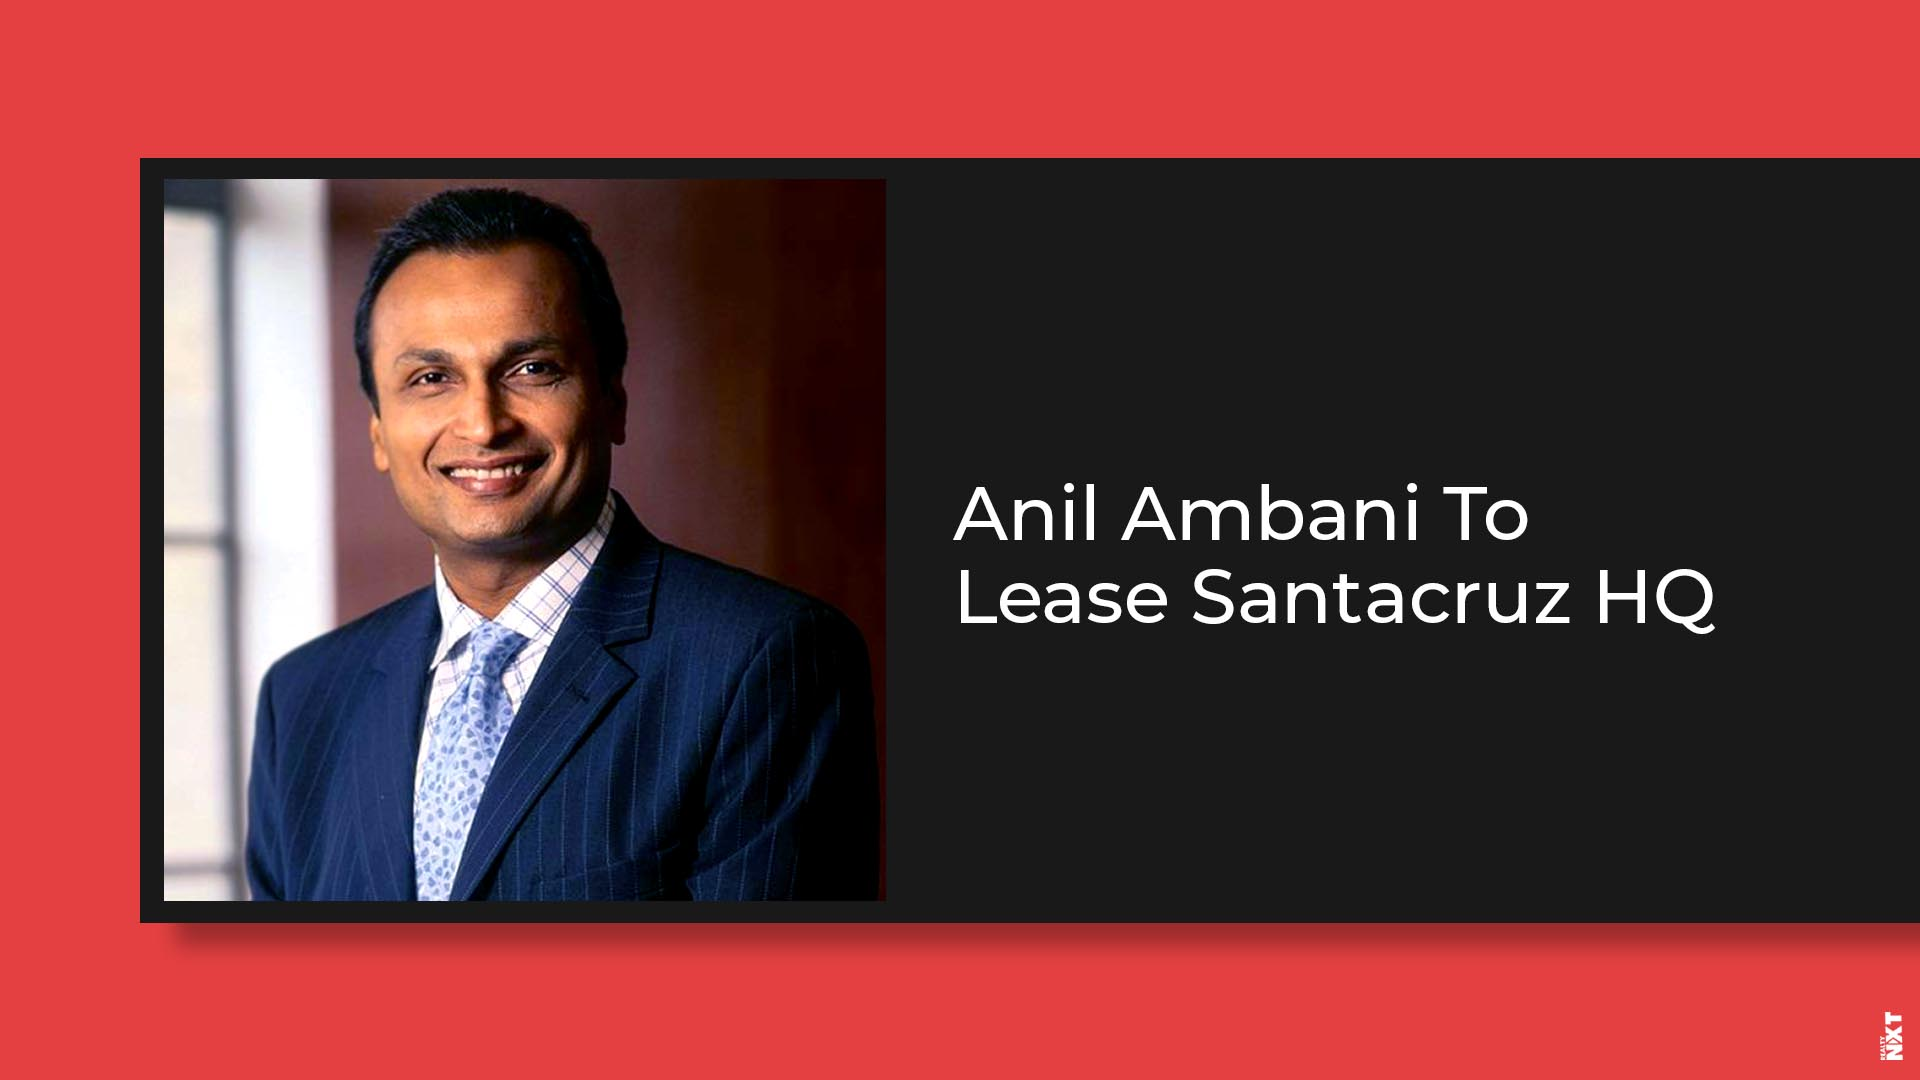 Debt-Ridden Anil Ambani Puts Up Office Space For Rent